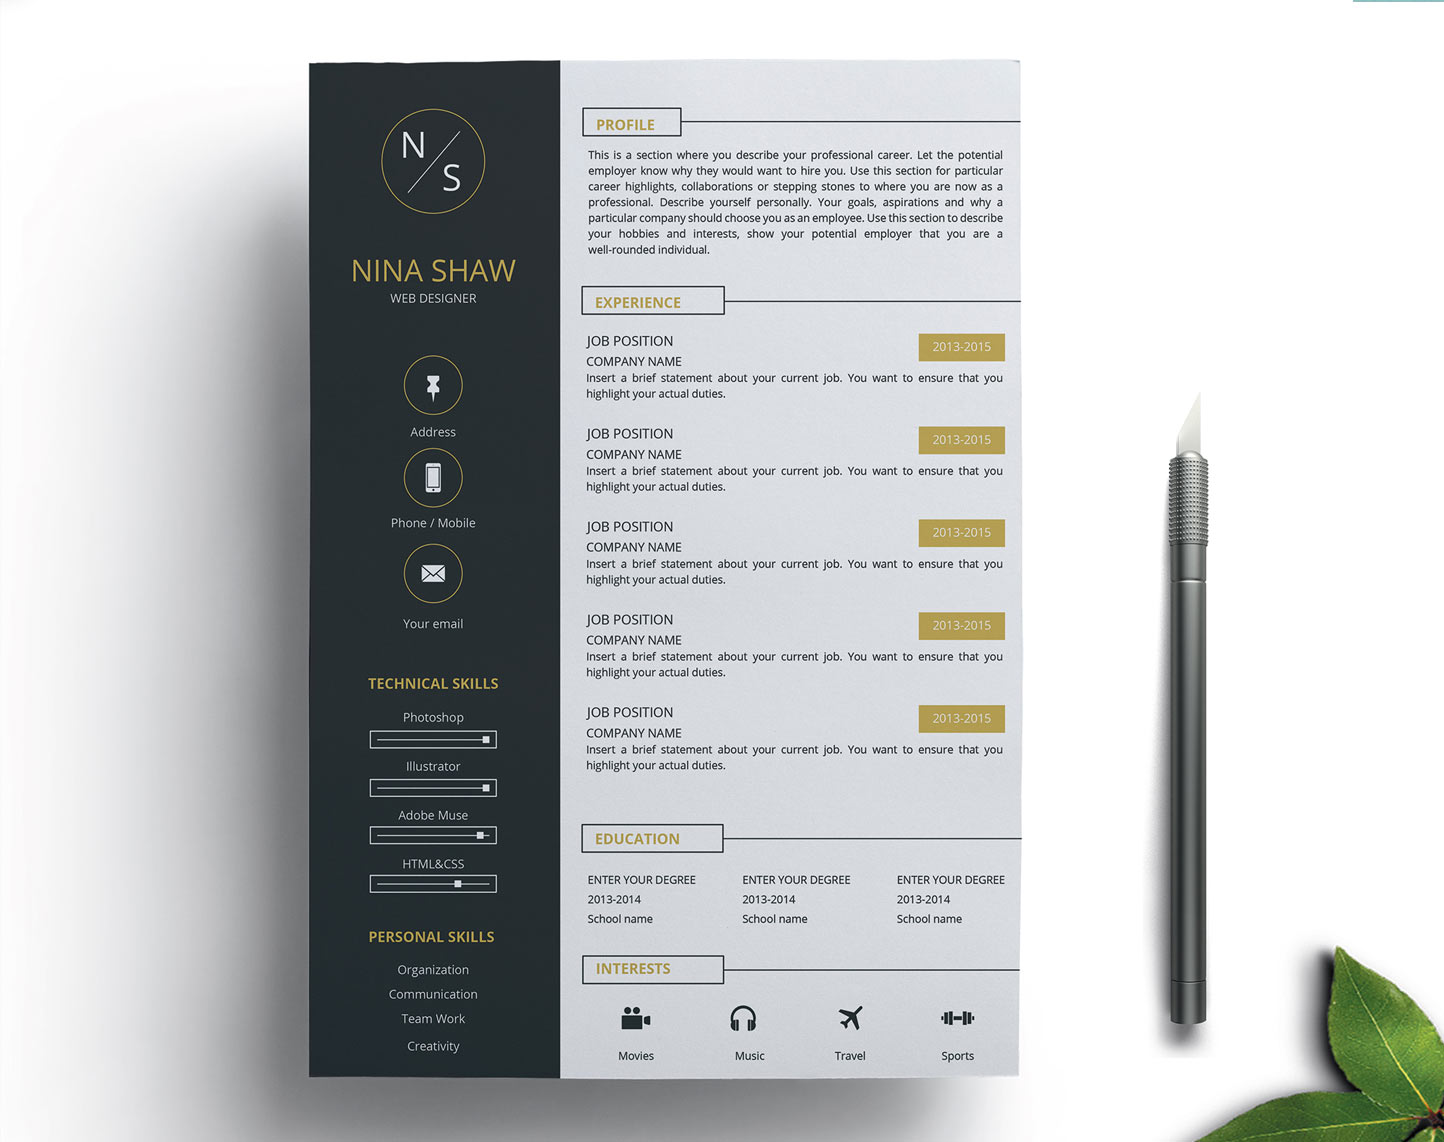 free resume template with matching cover letter resumekraft the muse templates clean Resume The Muse Resume Templates